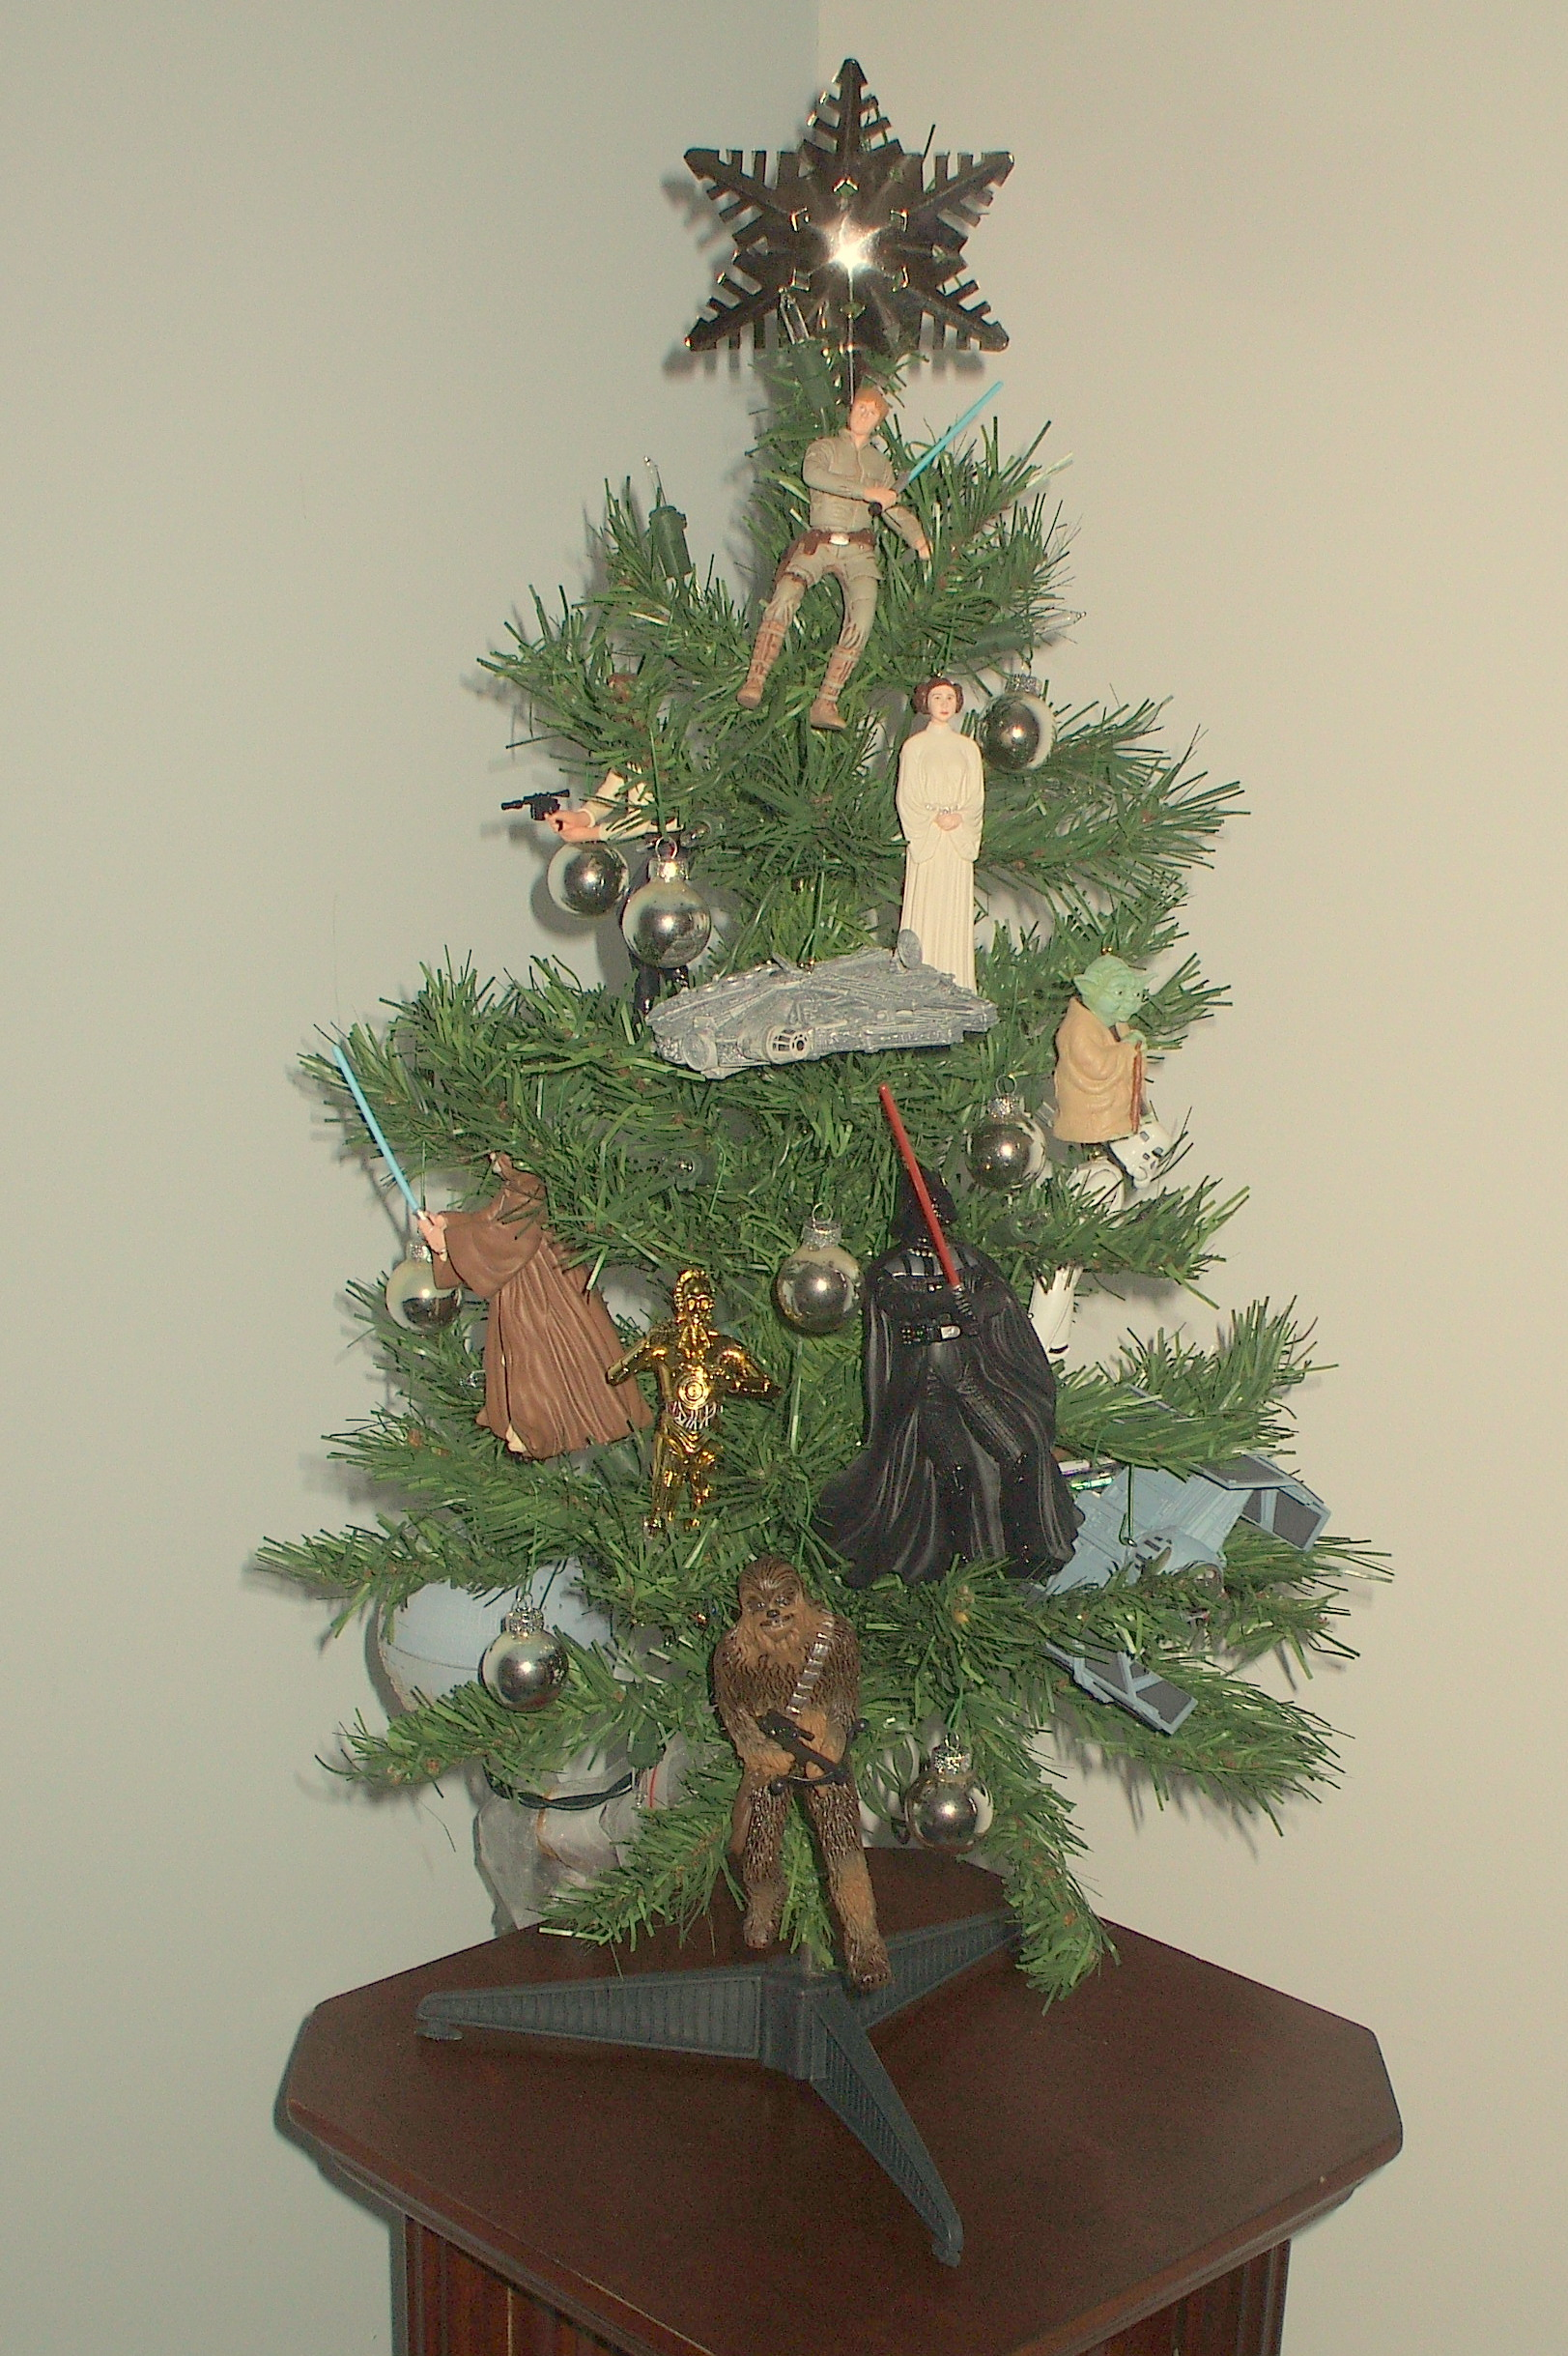 Star Wars Christmas Tree